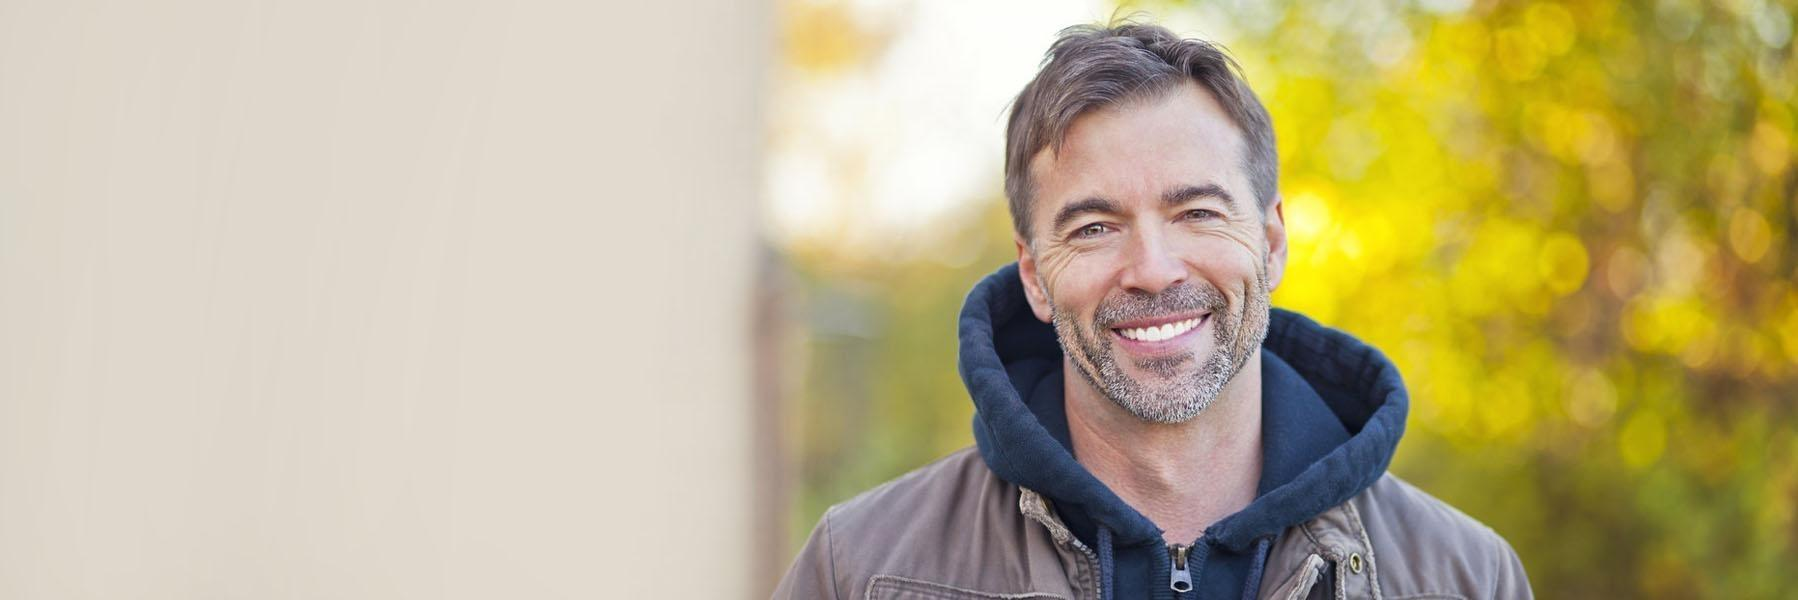 White spot removal in missoula | nelson dentistry